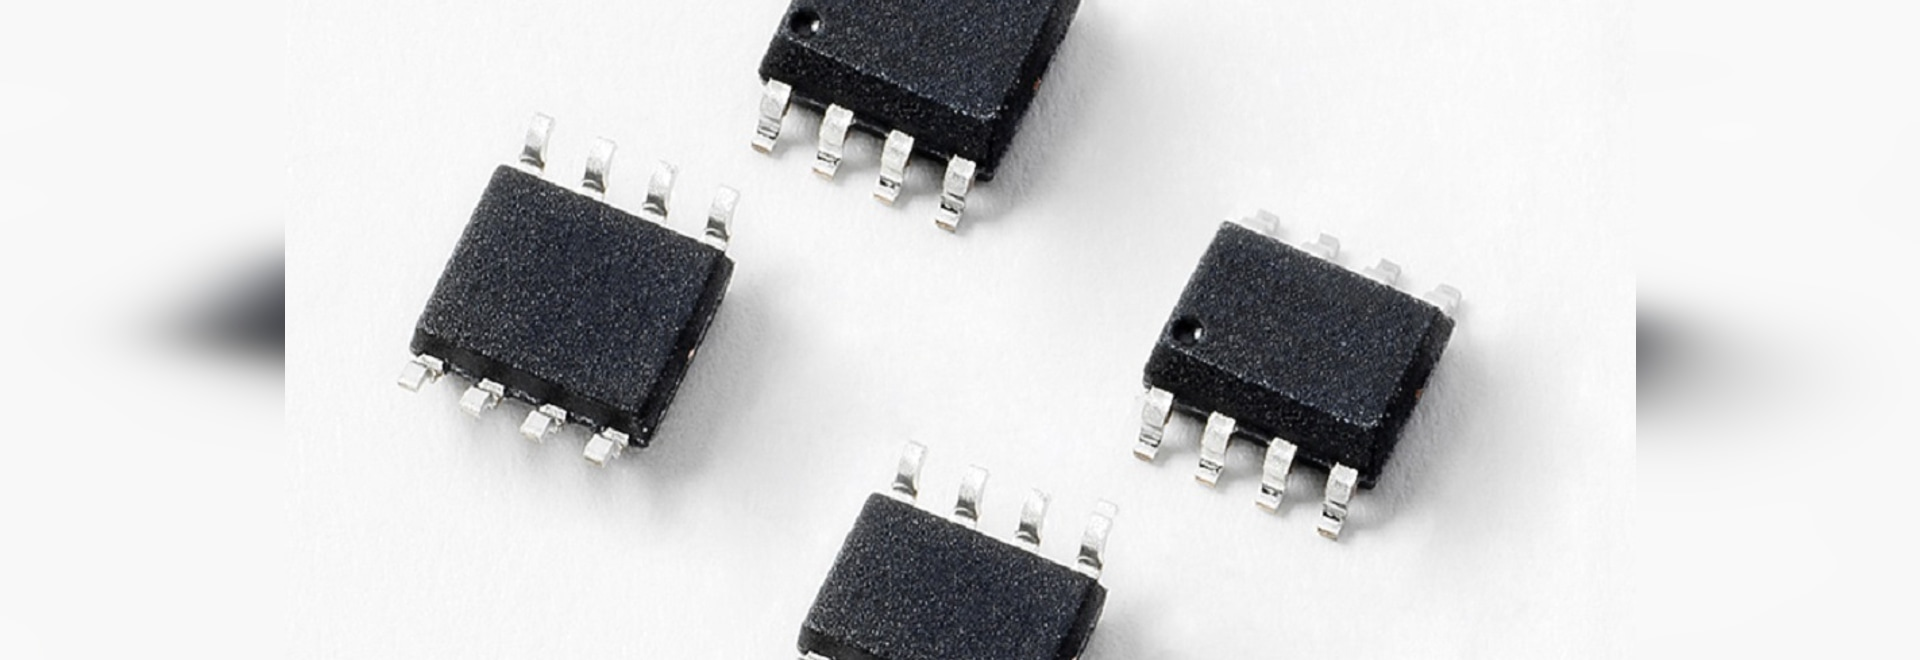 Thyristors Safeguard Slic Interfaces Chicago Il 60631 Usa